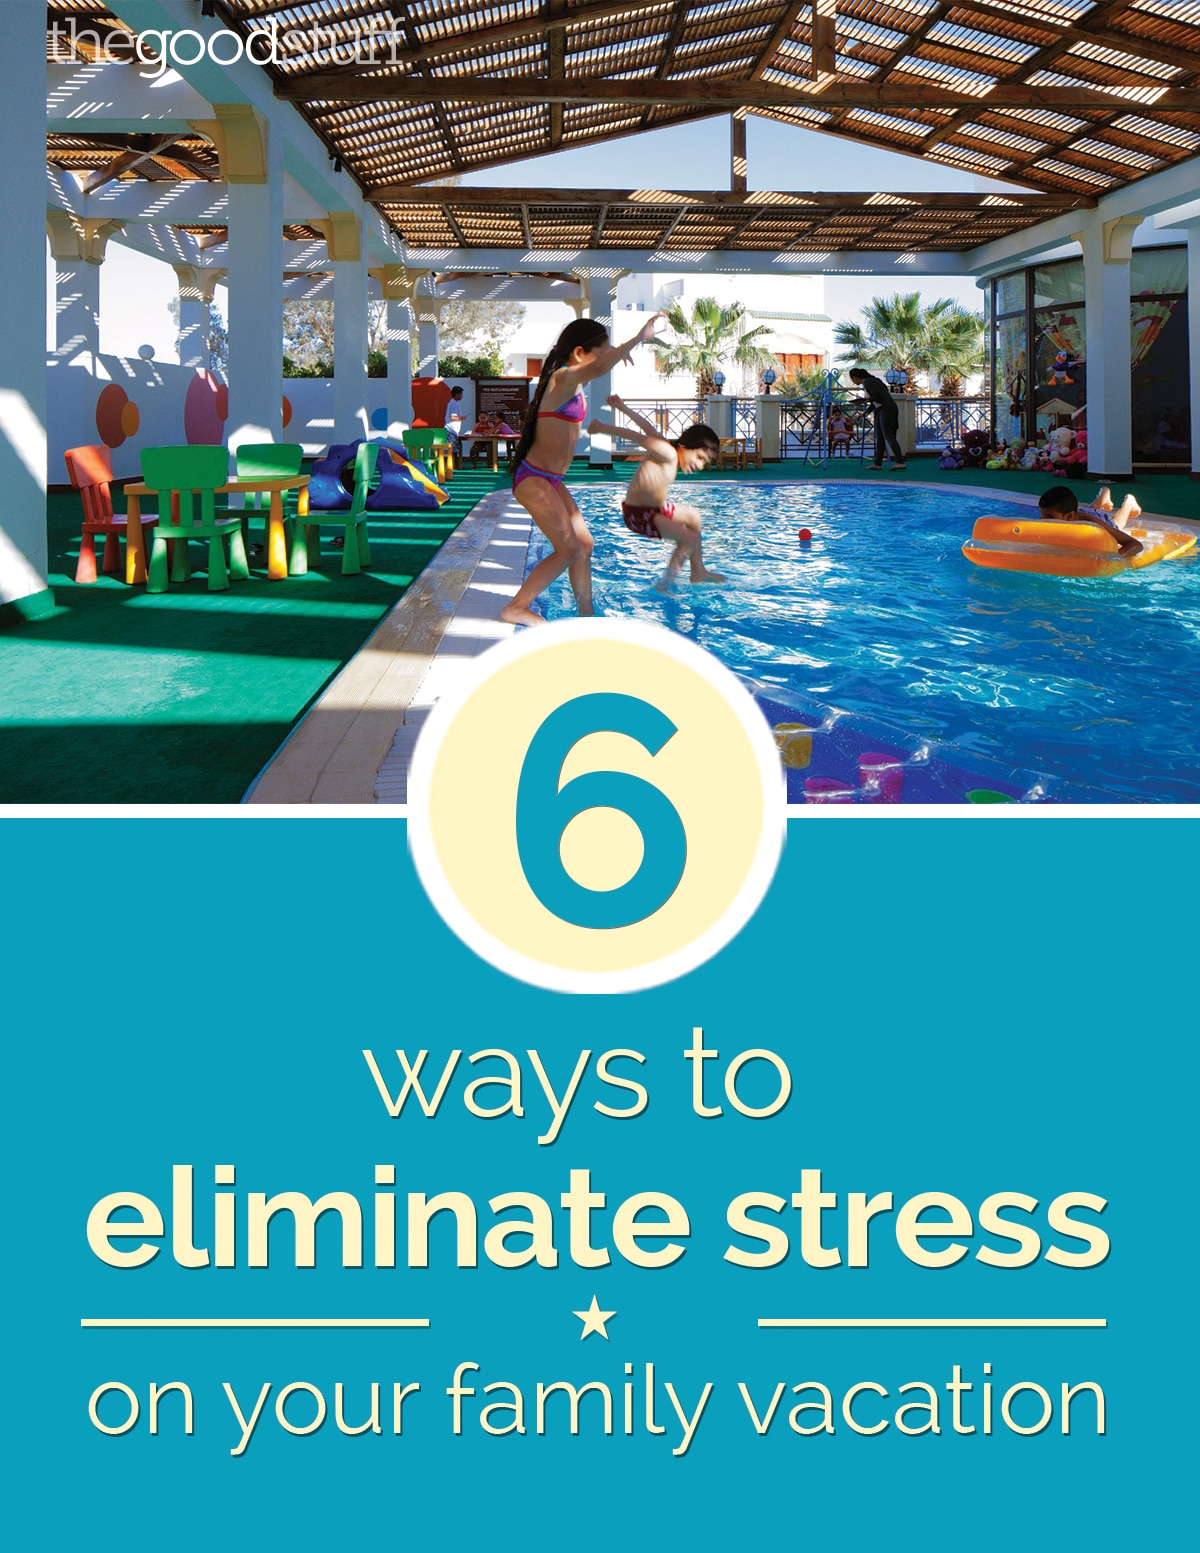 6 Ways to Eliminate Stress From Your Family Vacation | thegoodstuff